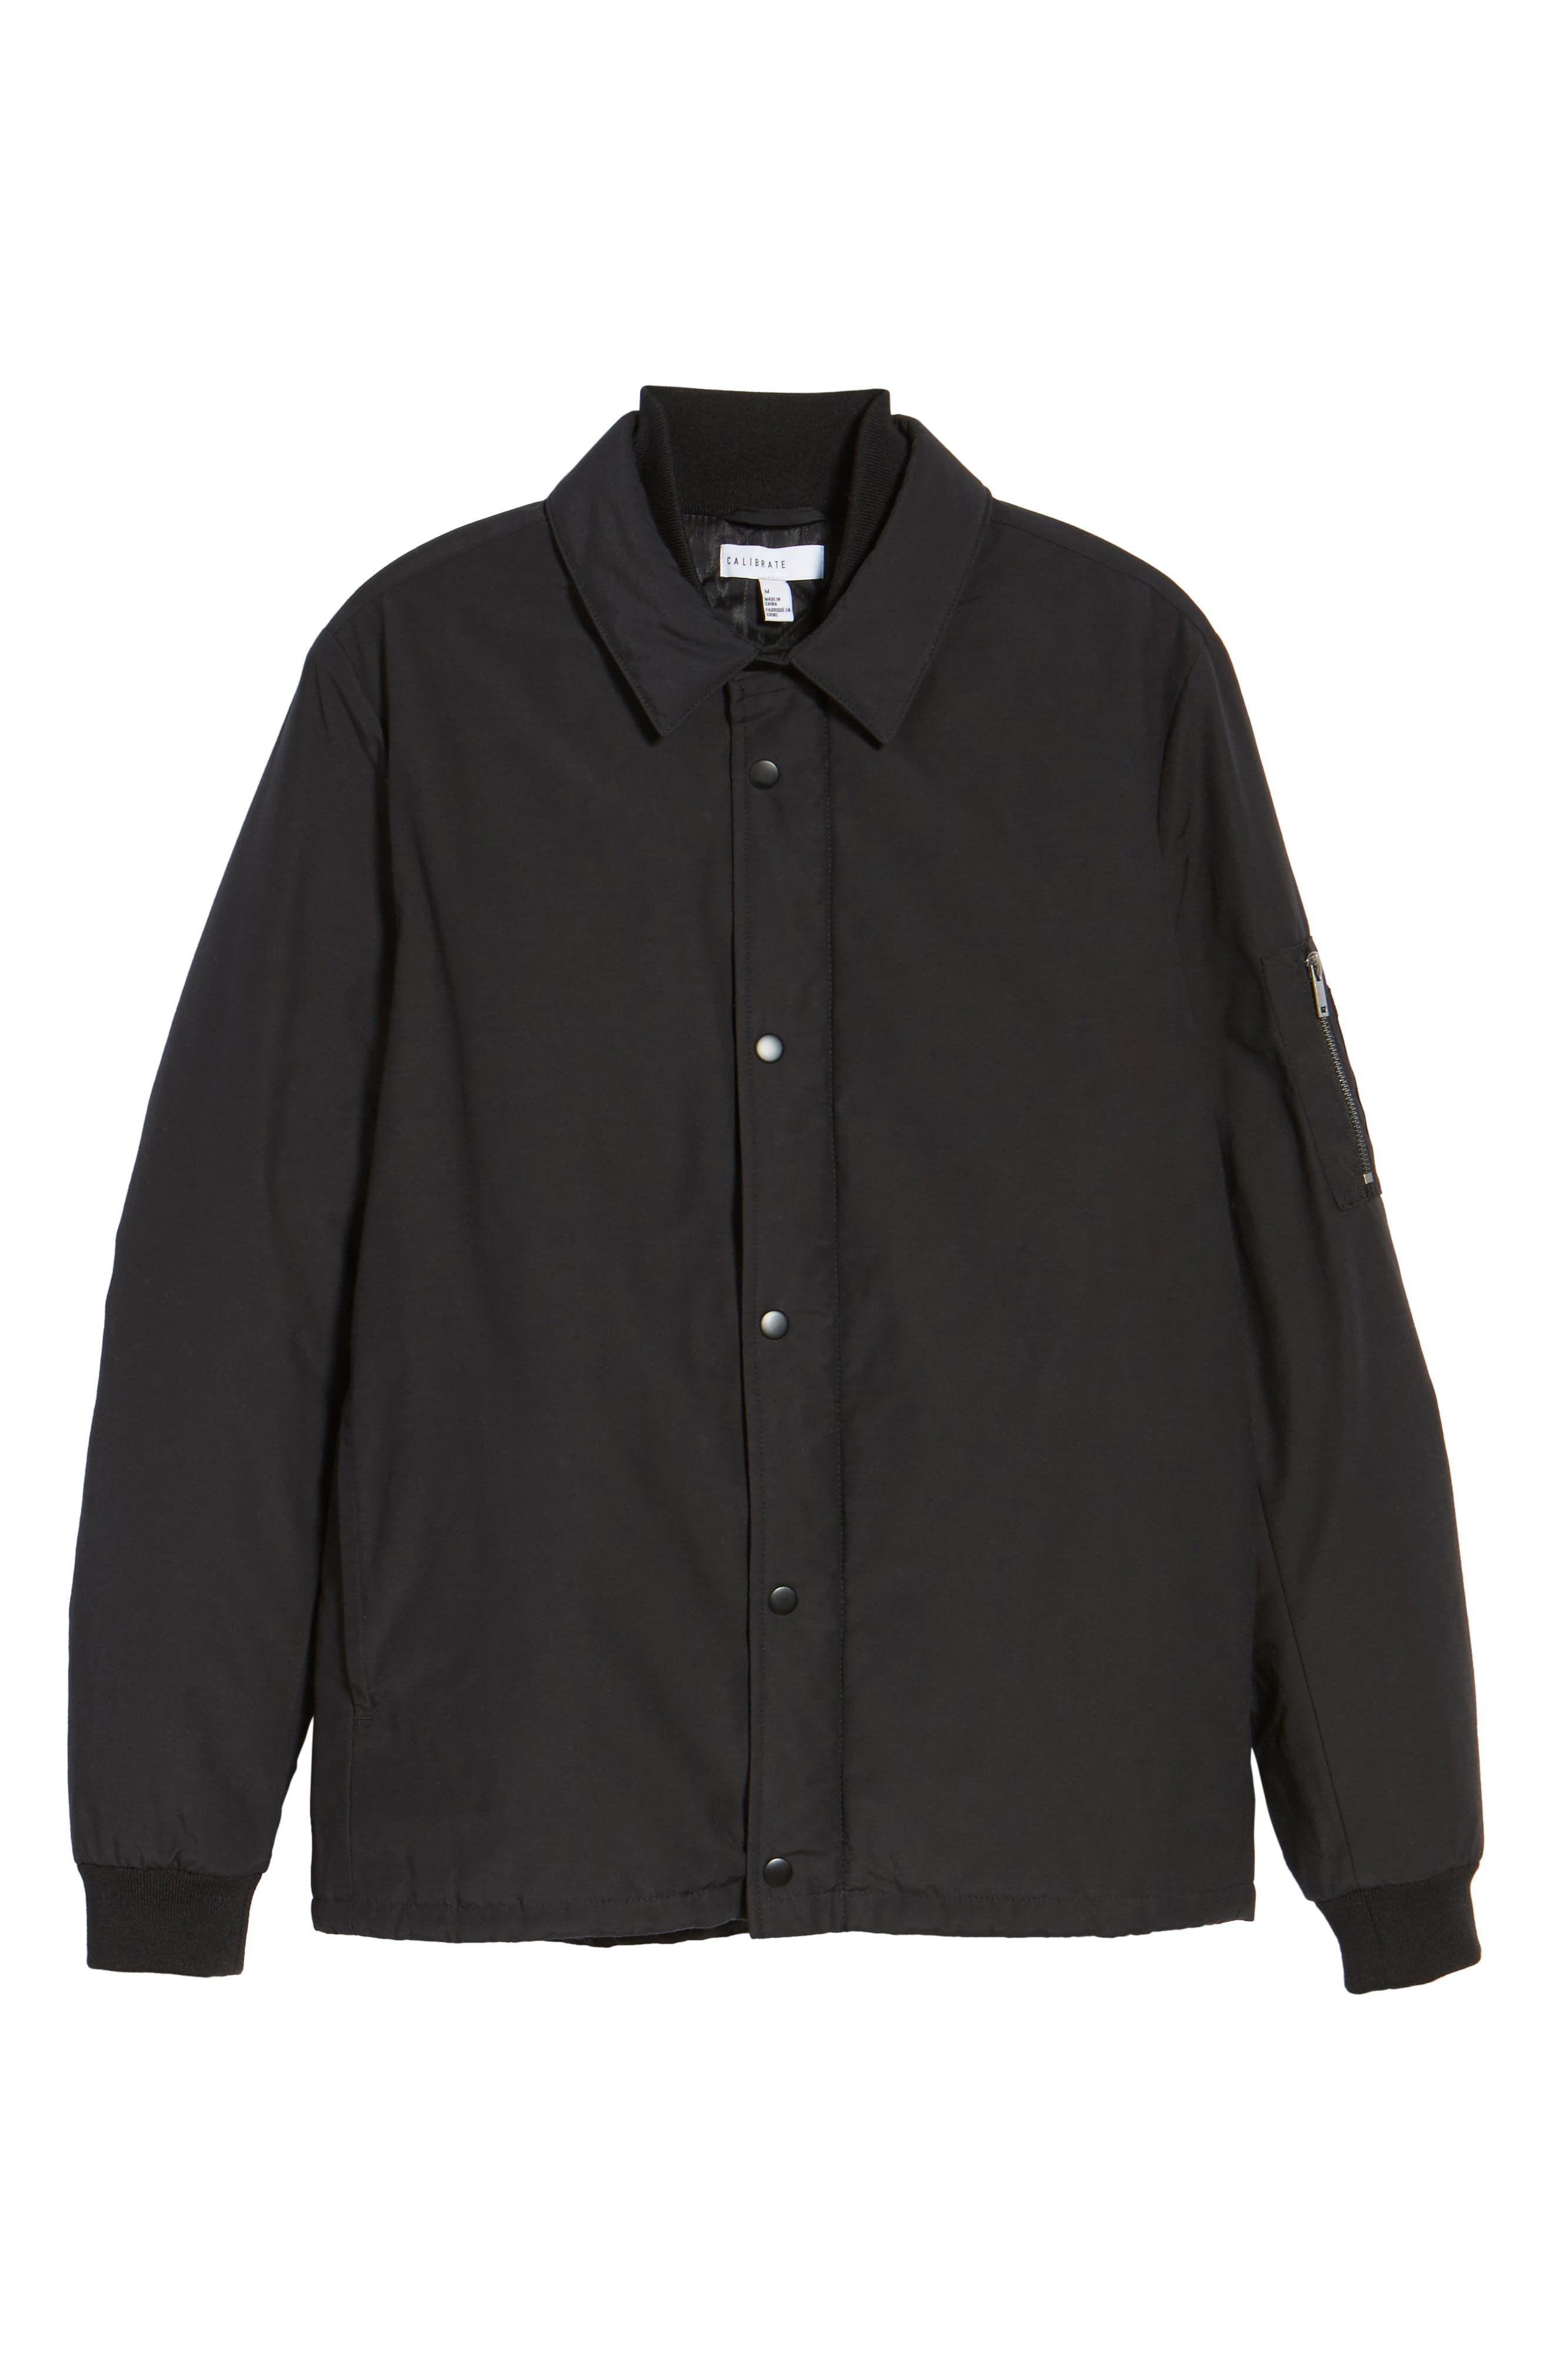 Collared Bomber Jacket,                             Alternate thumbnail 5, color,                             001